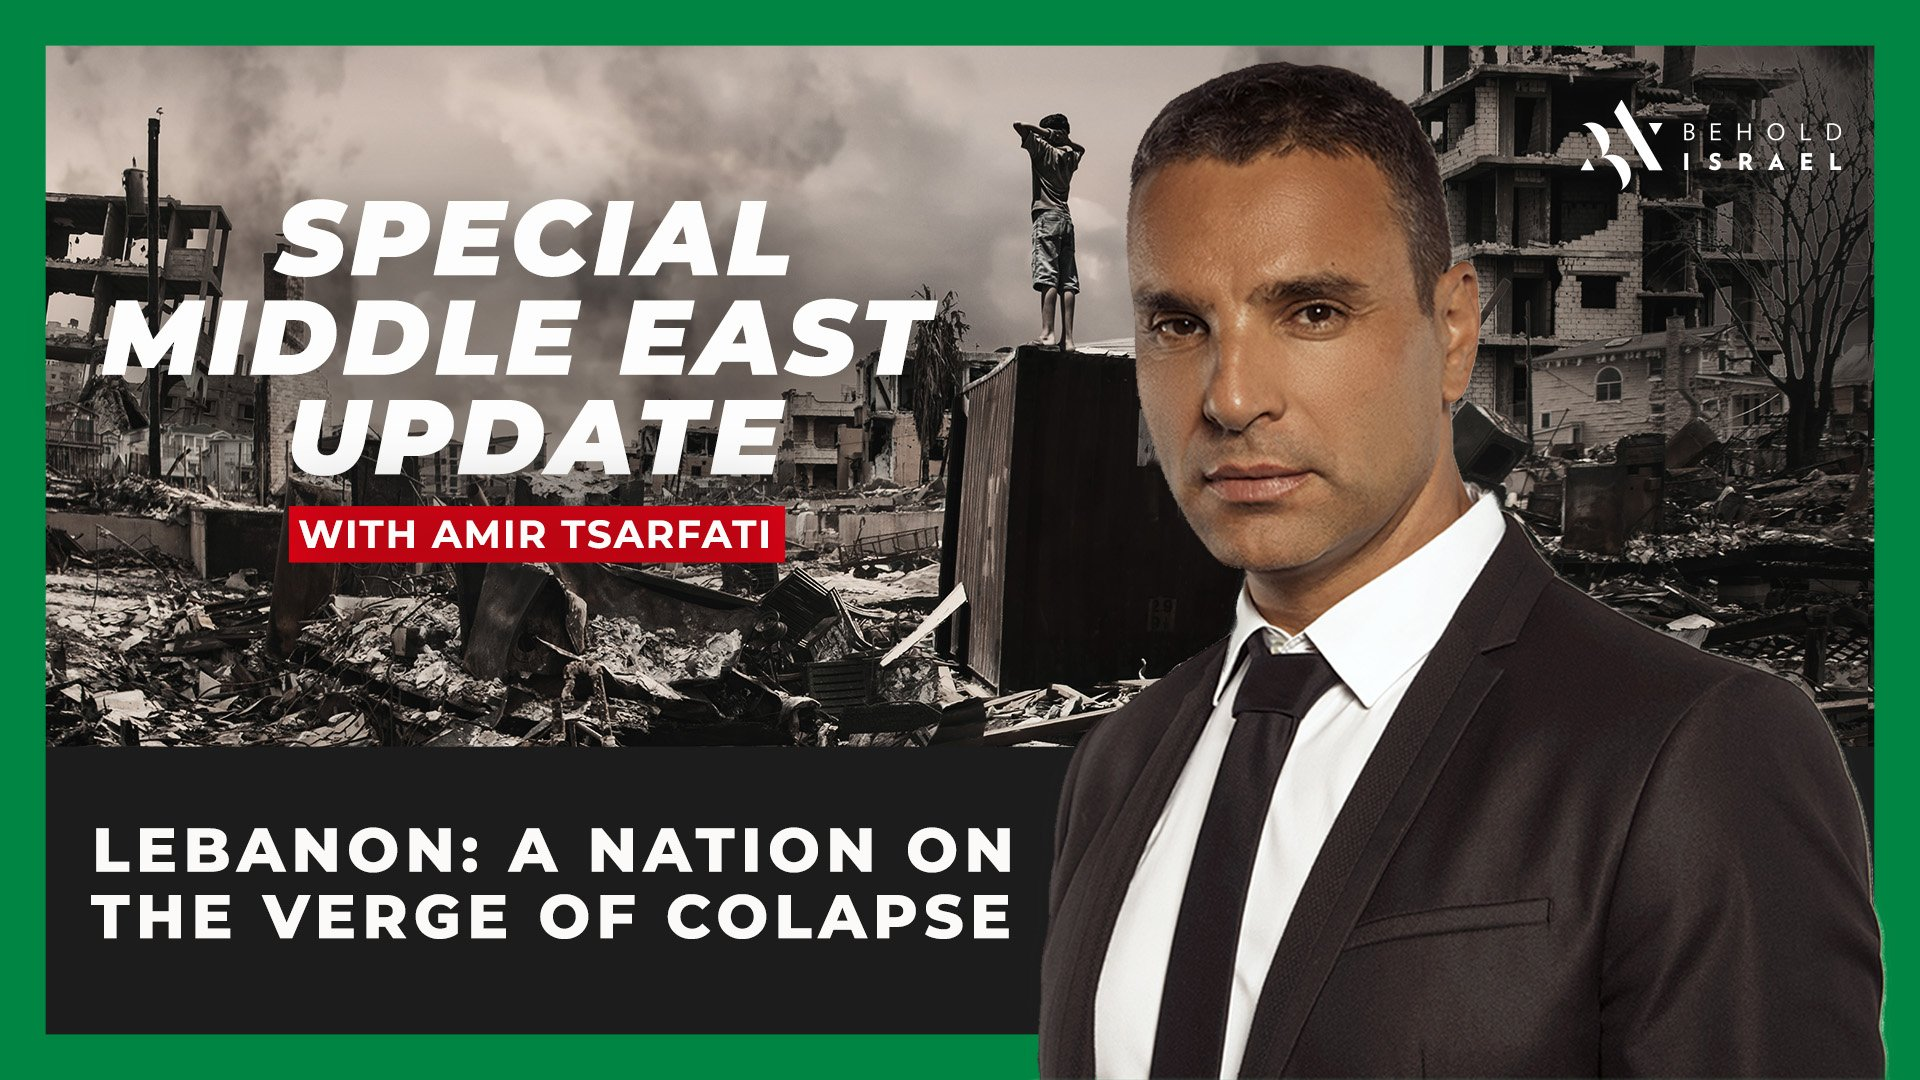 Special Middle East Update